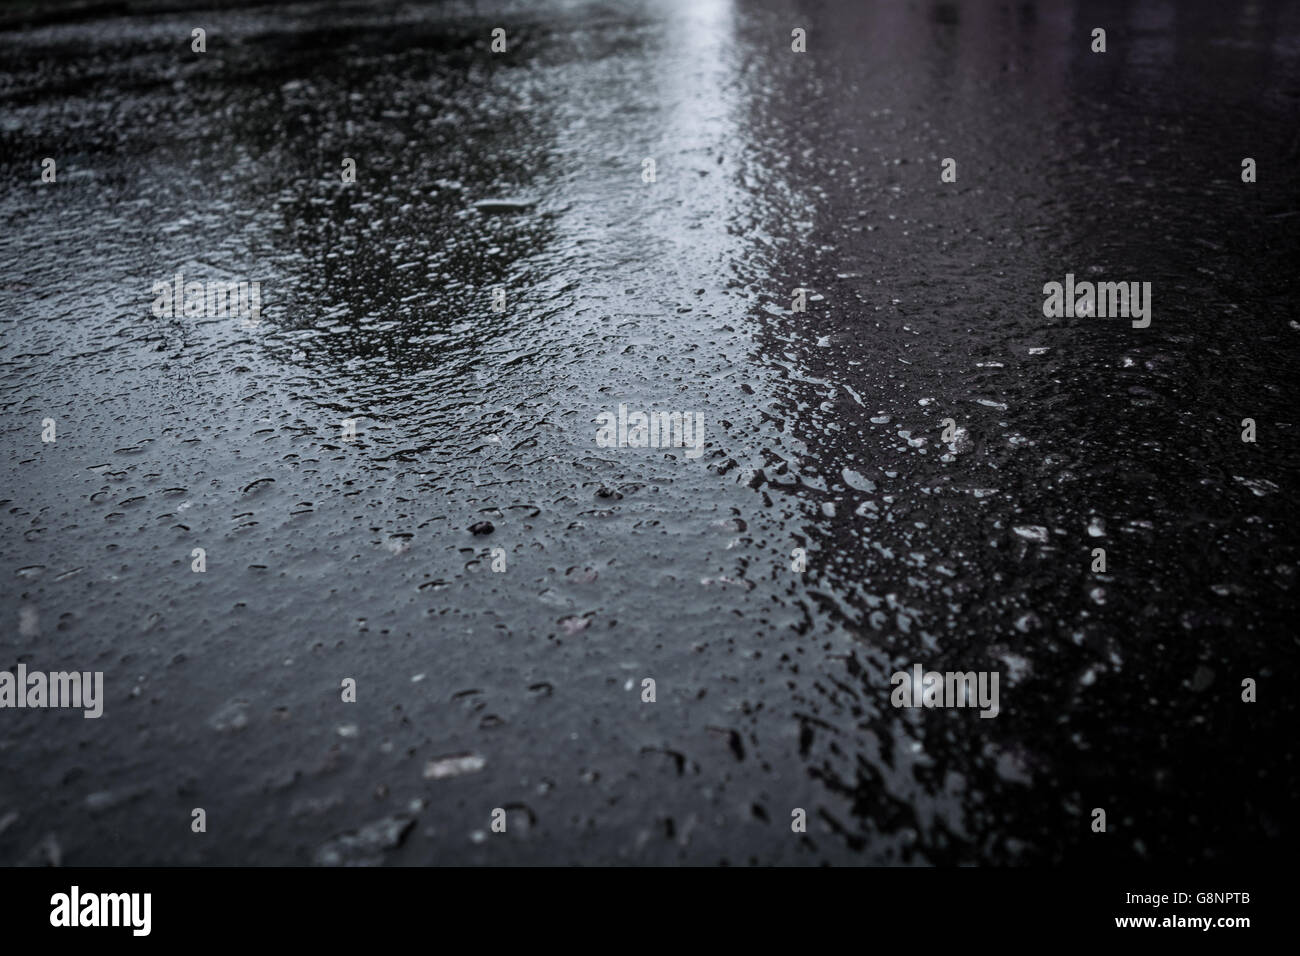 Wet asphalt - the color of calm, harmony and practicality 98